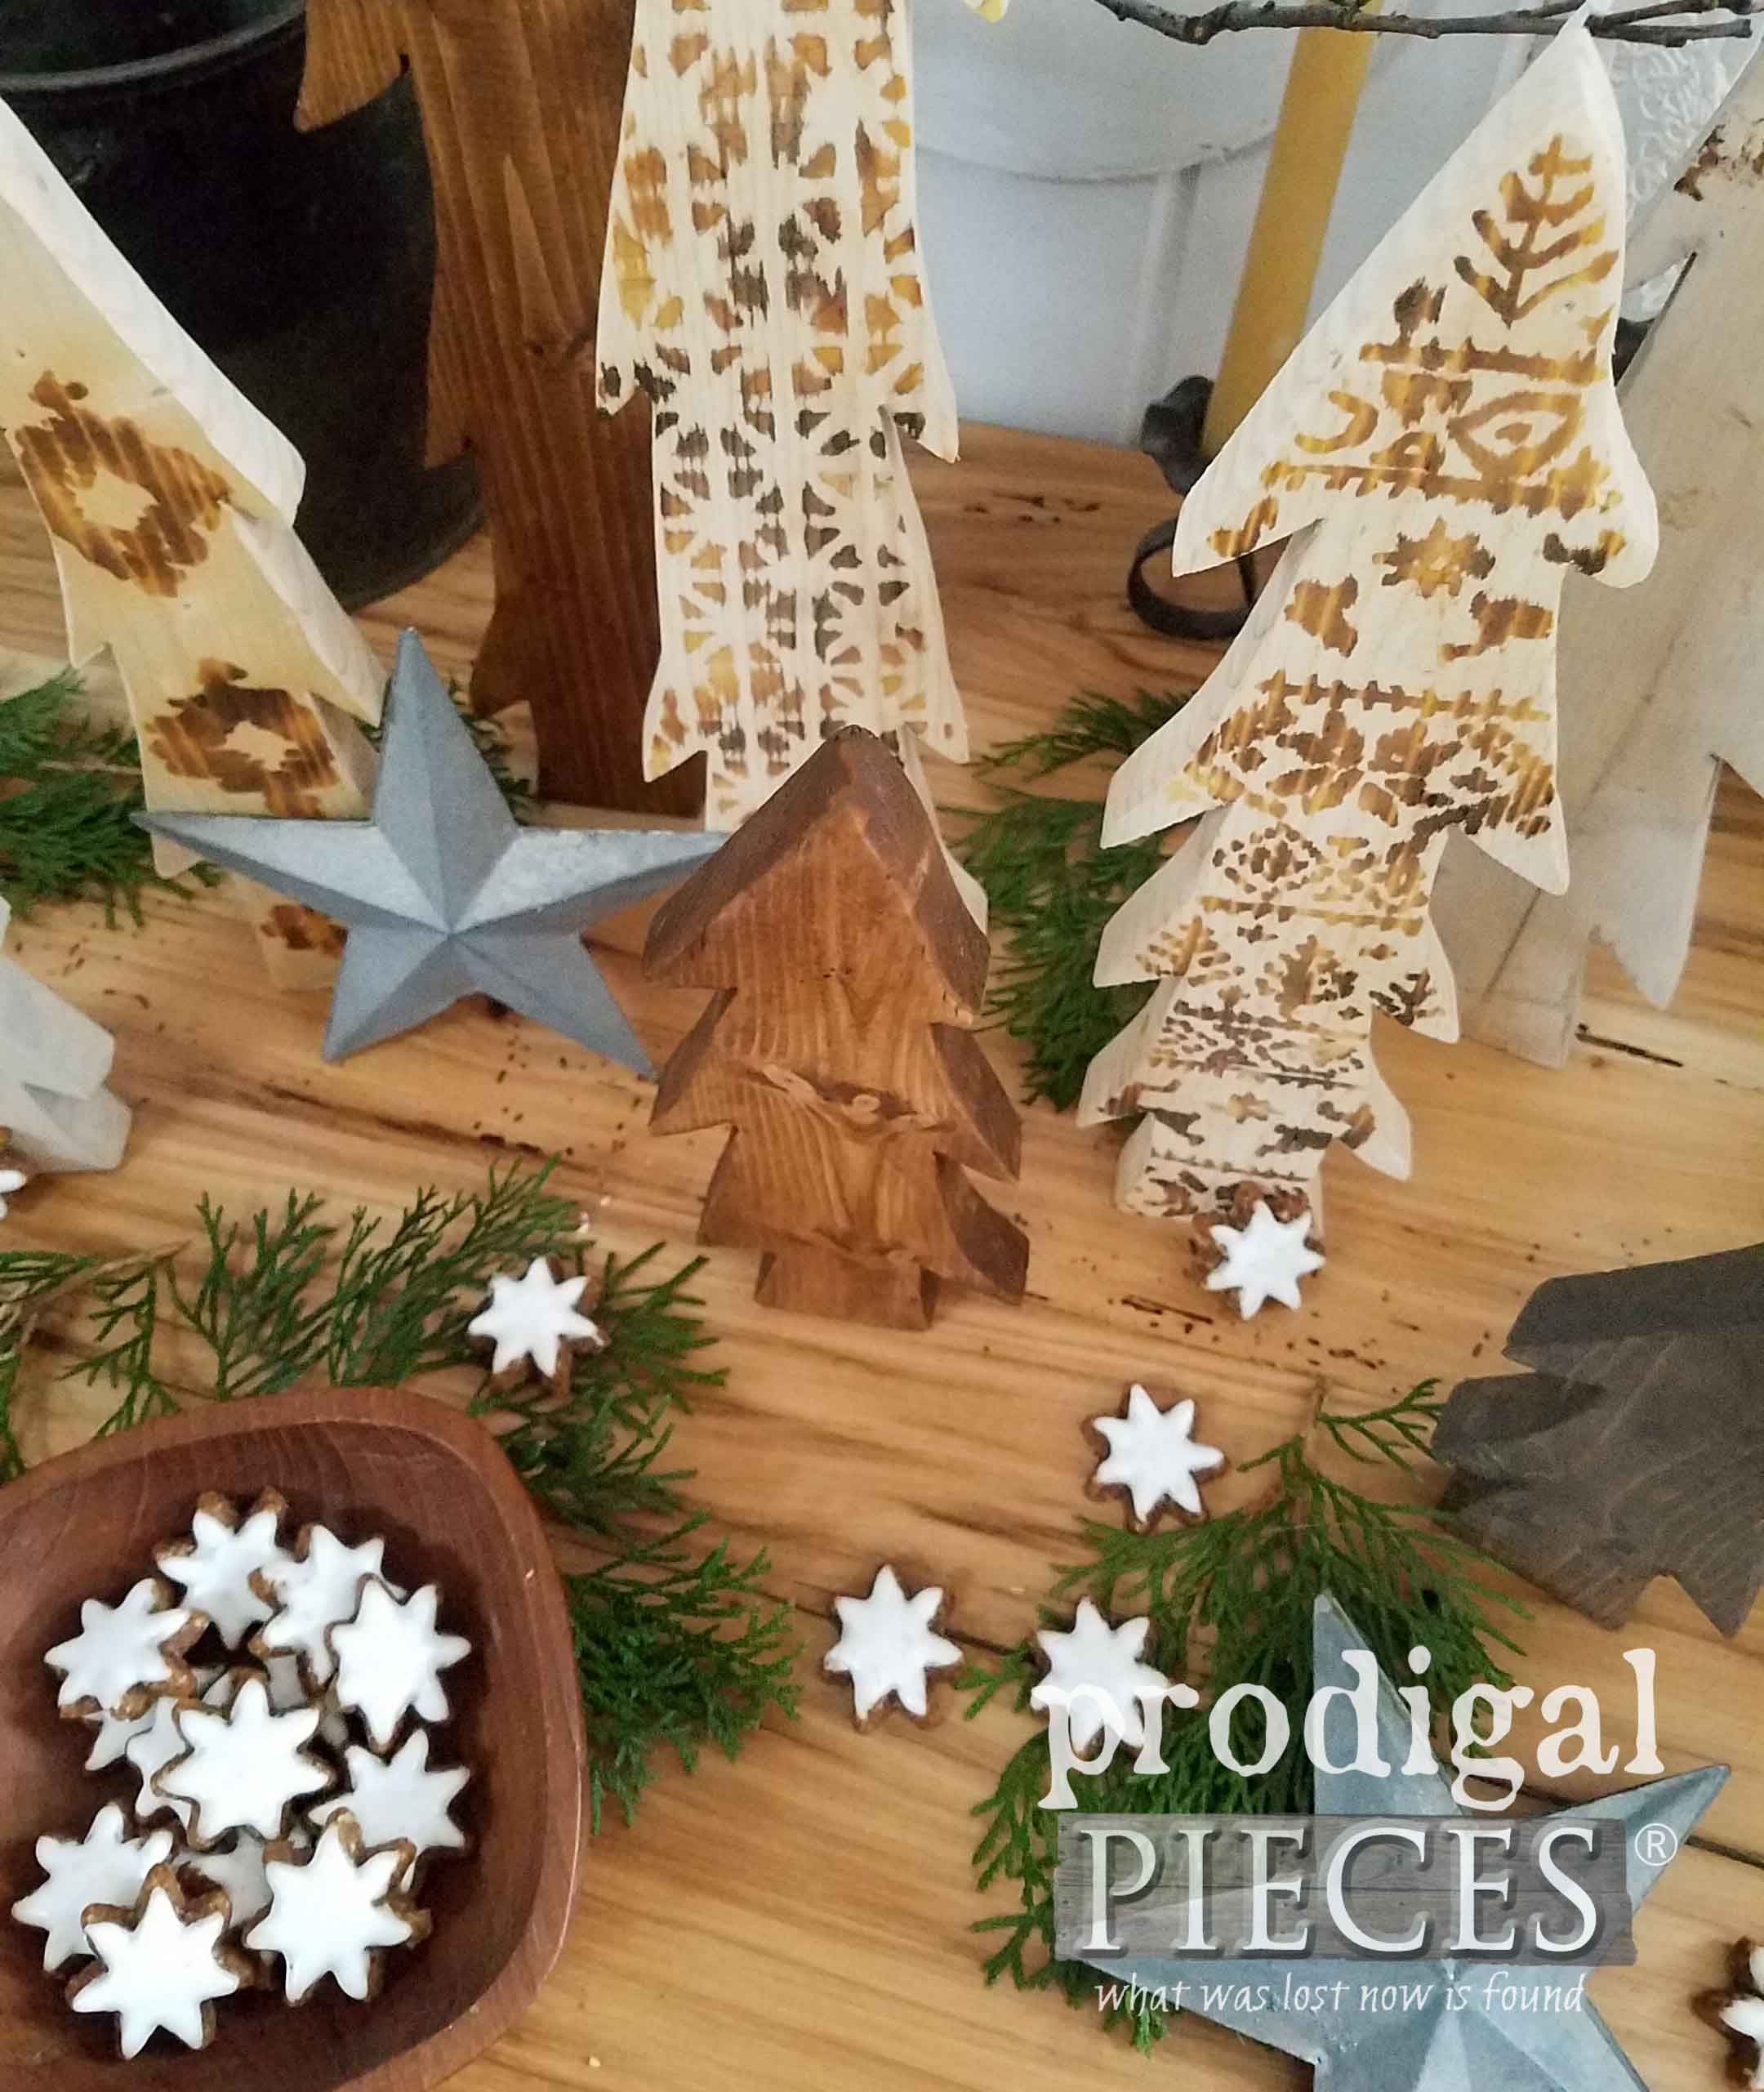 Festive Nordic Wooden Trees. How to Wood Burn with a Heat Gun by Larissa of Prodigal Pieces | prodigalpieces.com